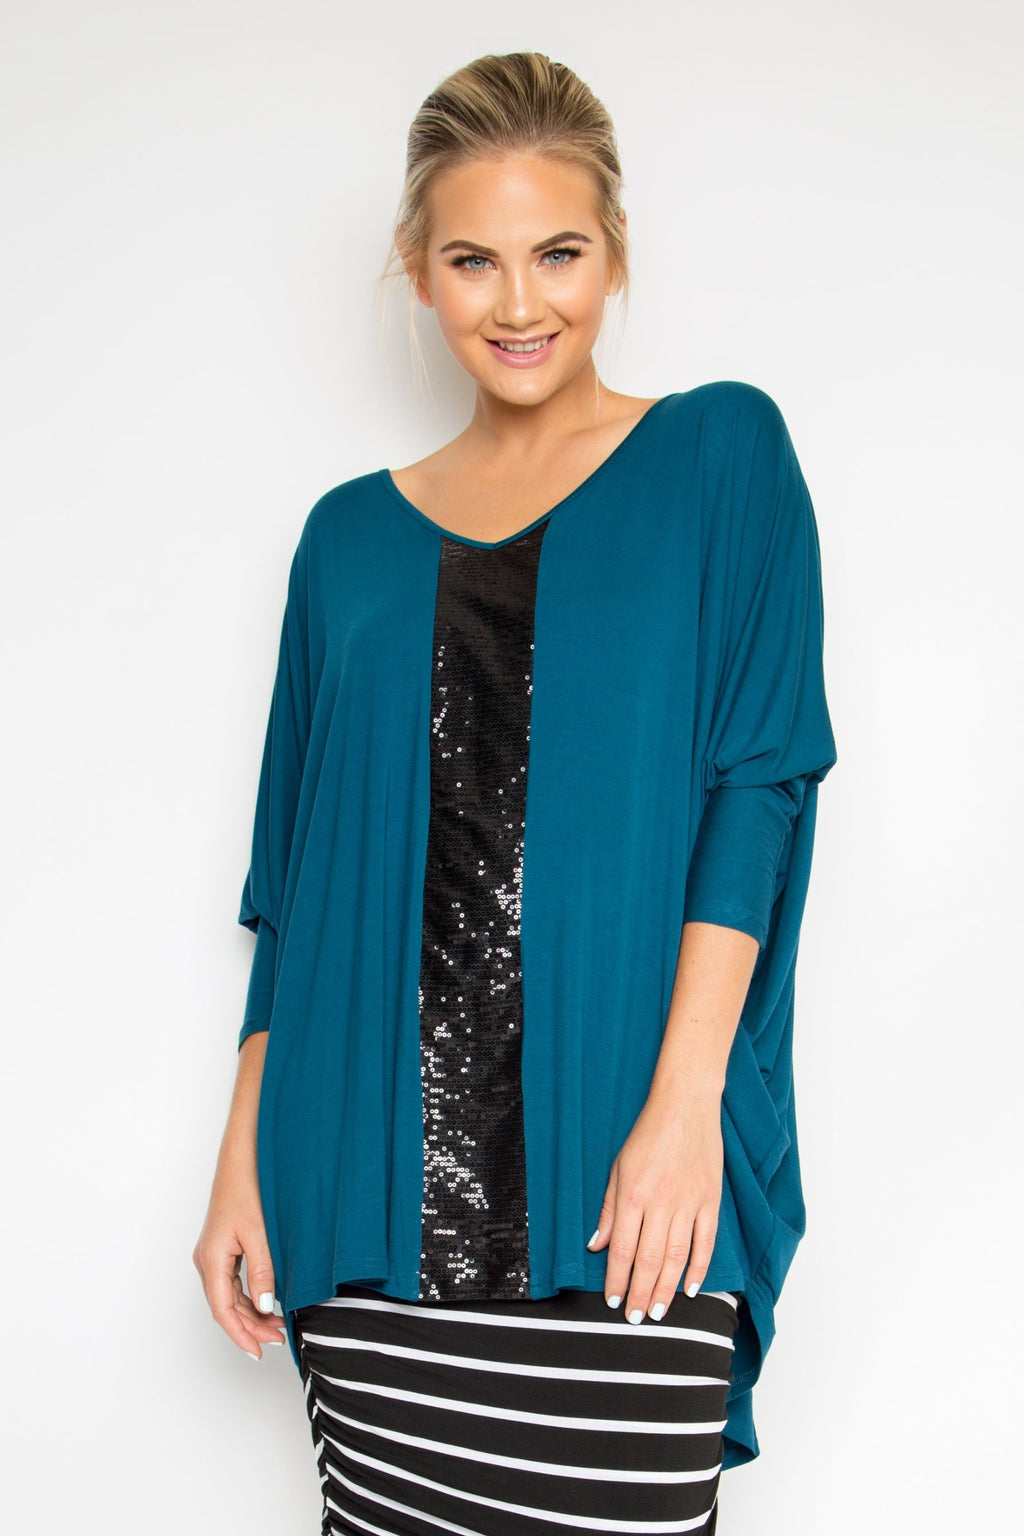 Sequinned Long Sleeve Hi Low Miracle Top in Teal/Black